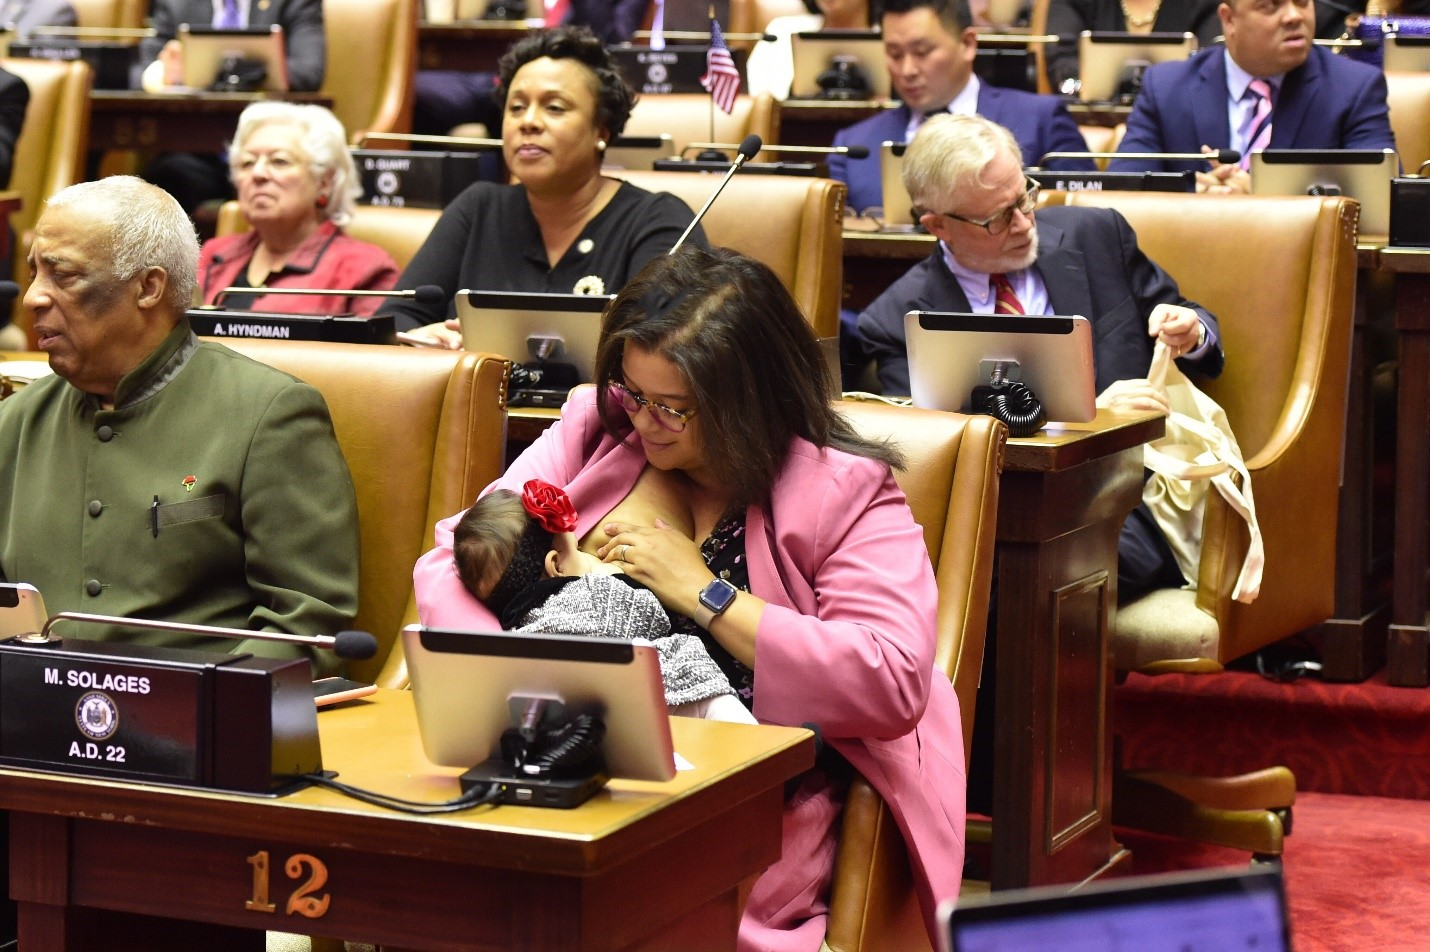 In 2019, Assemblywoman Michaelle Solages made State history when she breastfed her infant daughter on the floor of the State Assembly during the opening day of the legislative session.